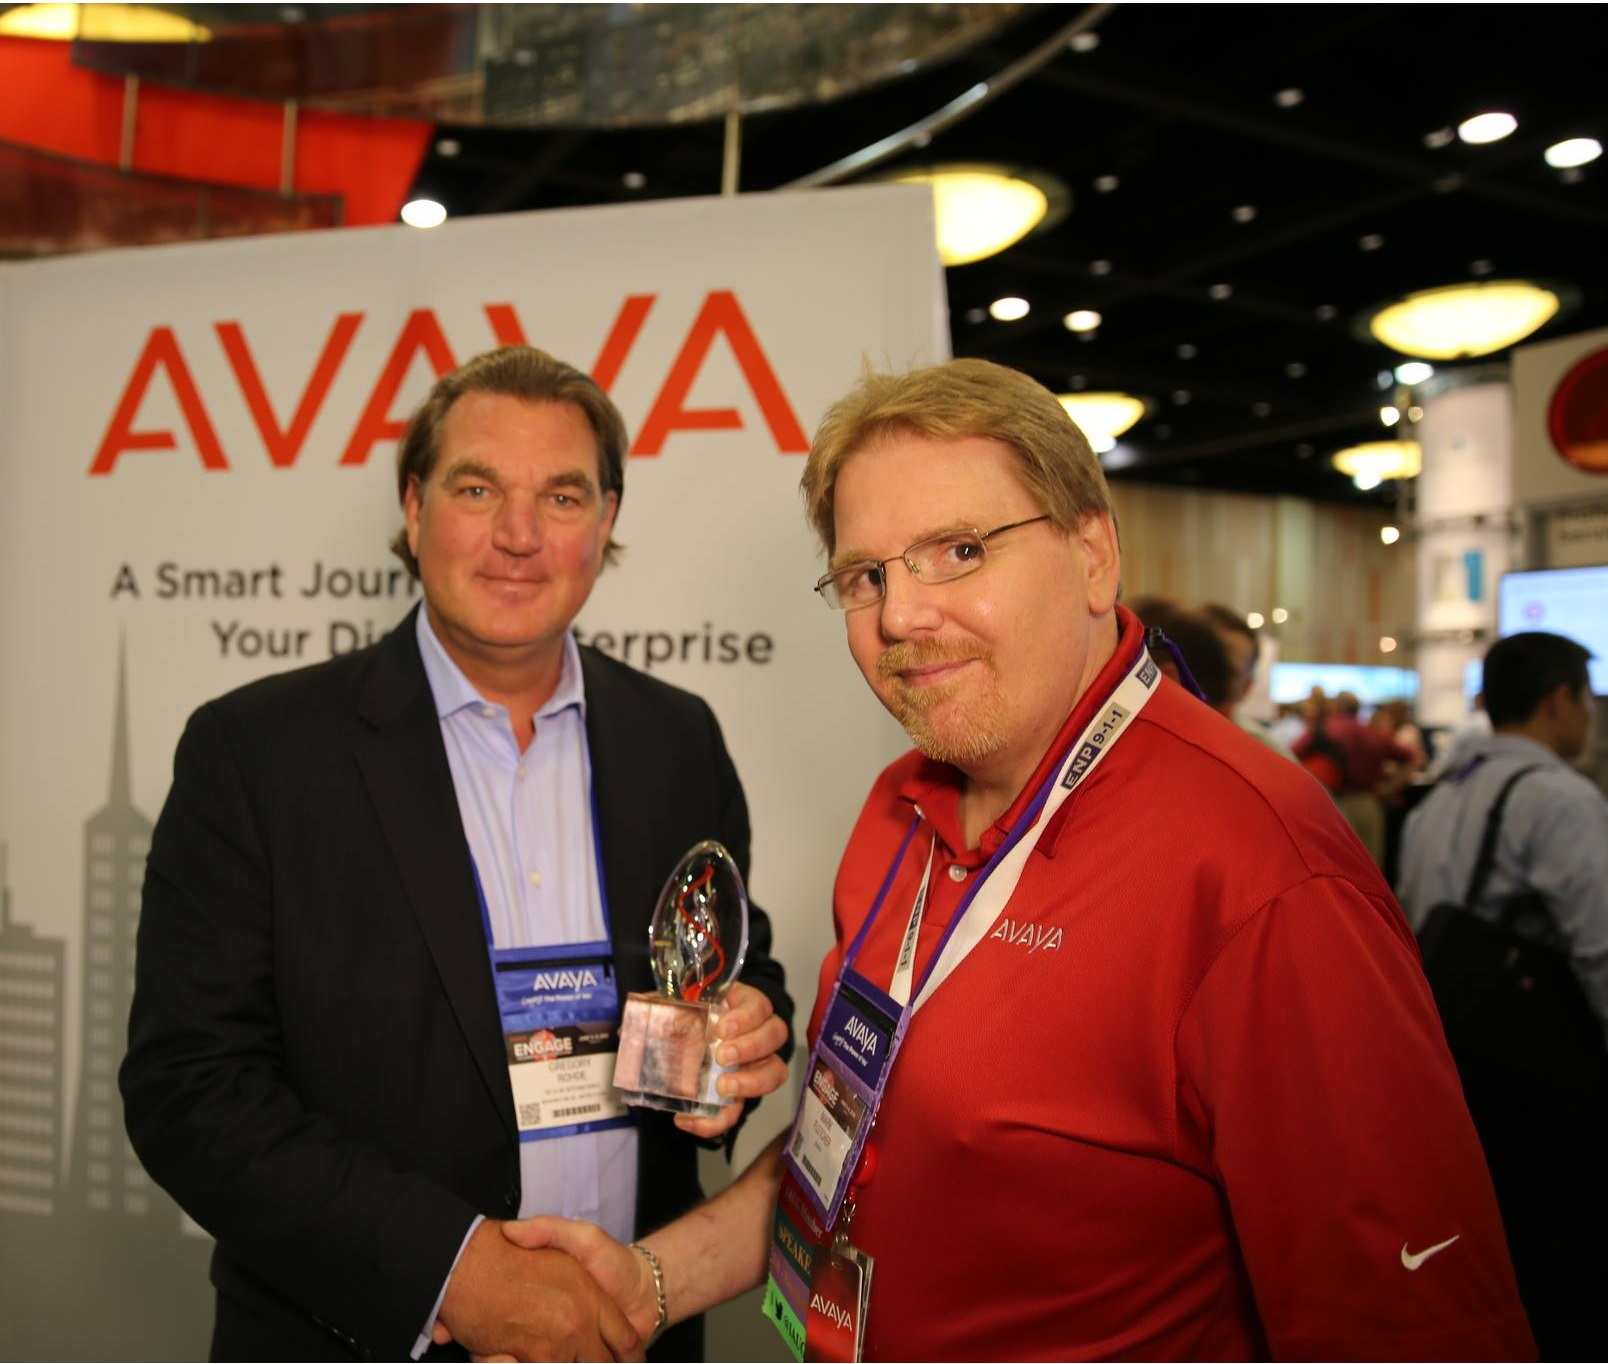 Avaya DevConnect New Partner of the Year Award